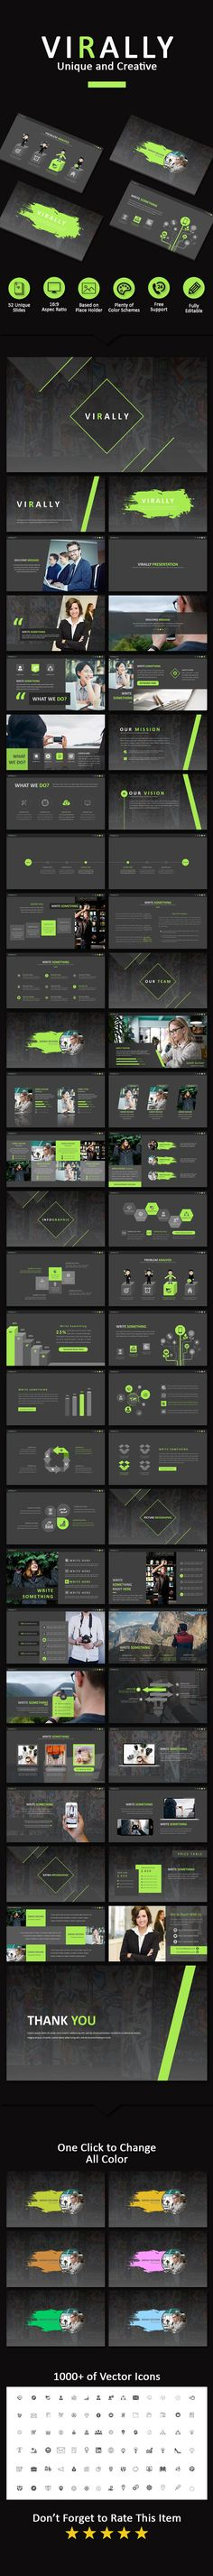 Virally Creative Powerpoint - Business PowerPoint Templates